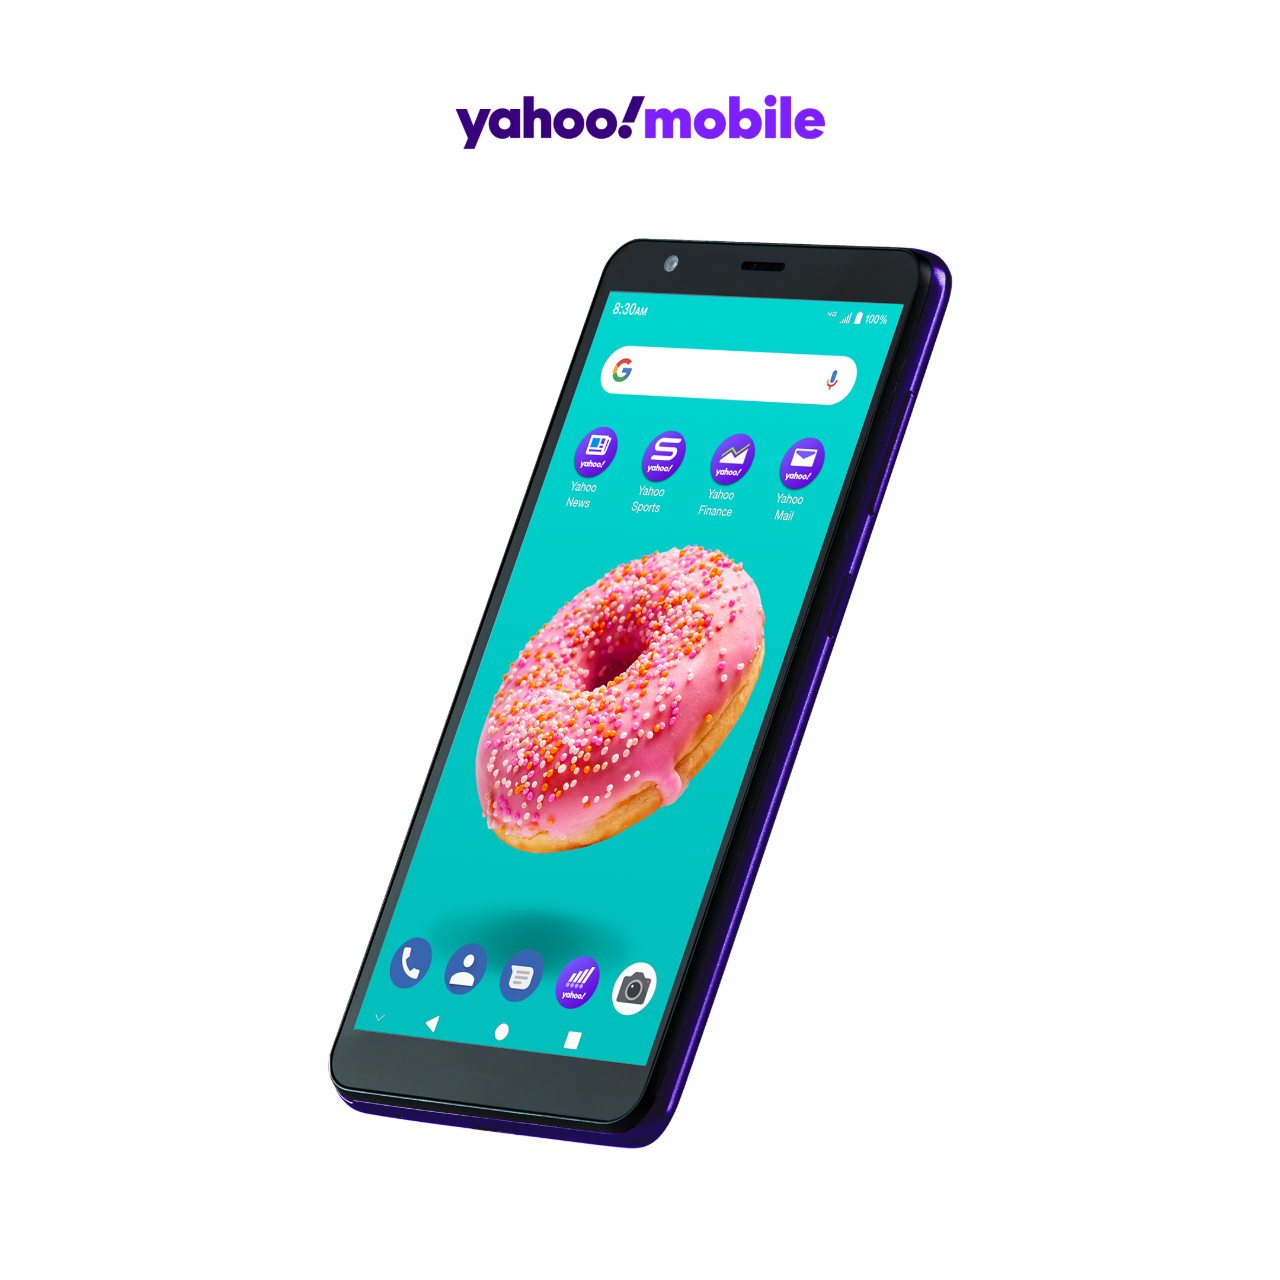 Verizon adds another cheap ZTE smartphone to its Yahoo Mobile prepaid service